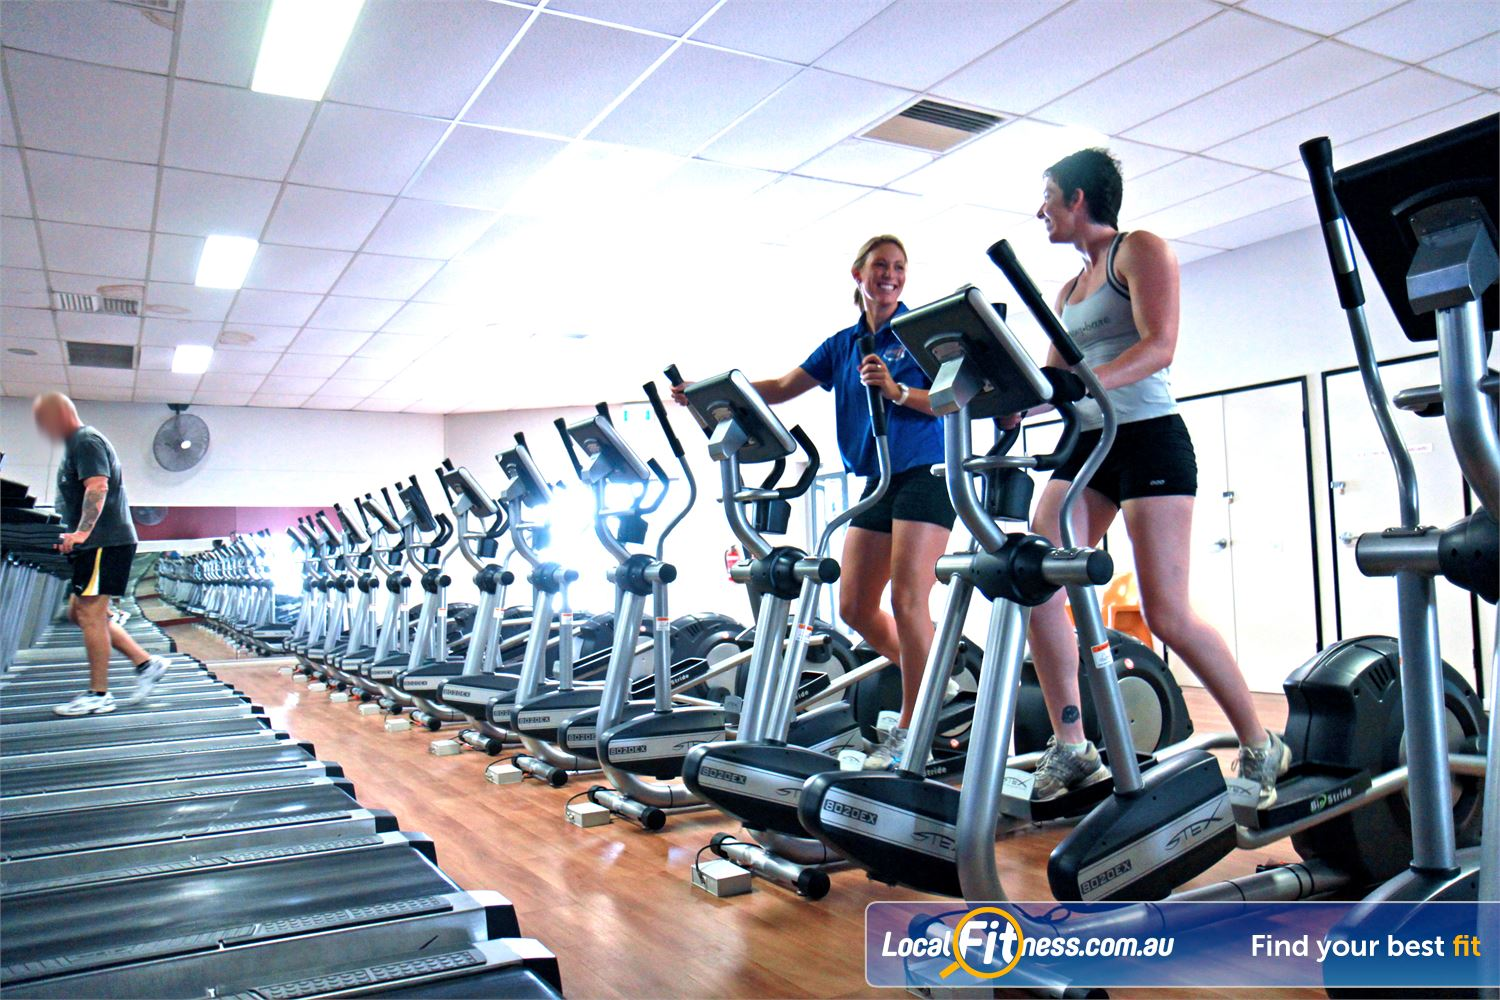 Goodlife Health Clubs Alexandra Hills Goodlife Alexandra Hills gym offers rows of cross trainers.